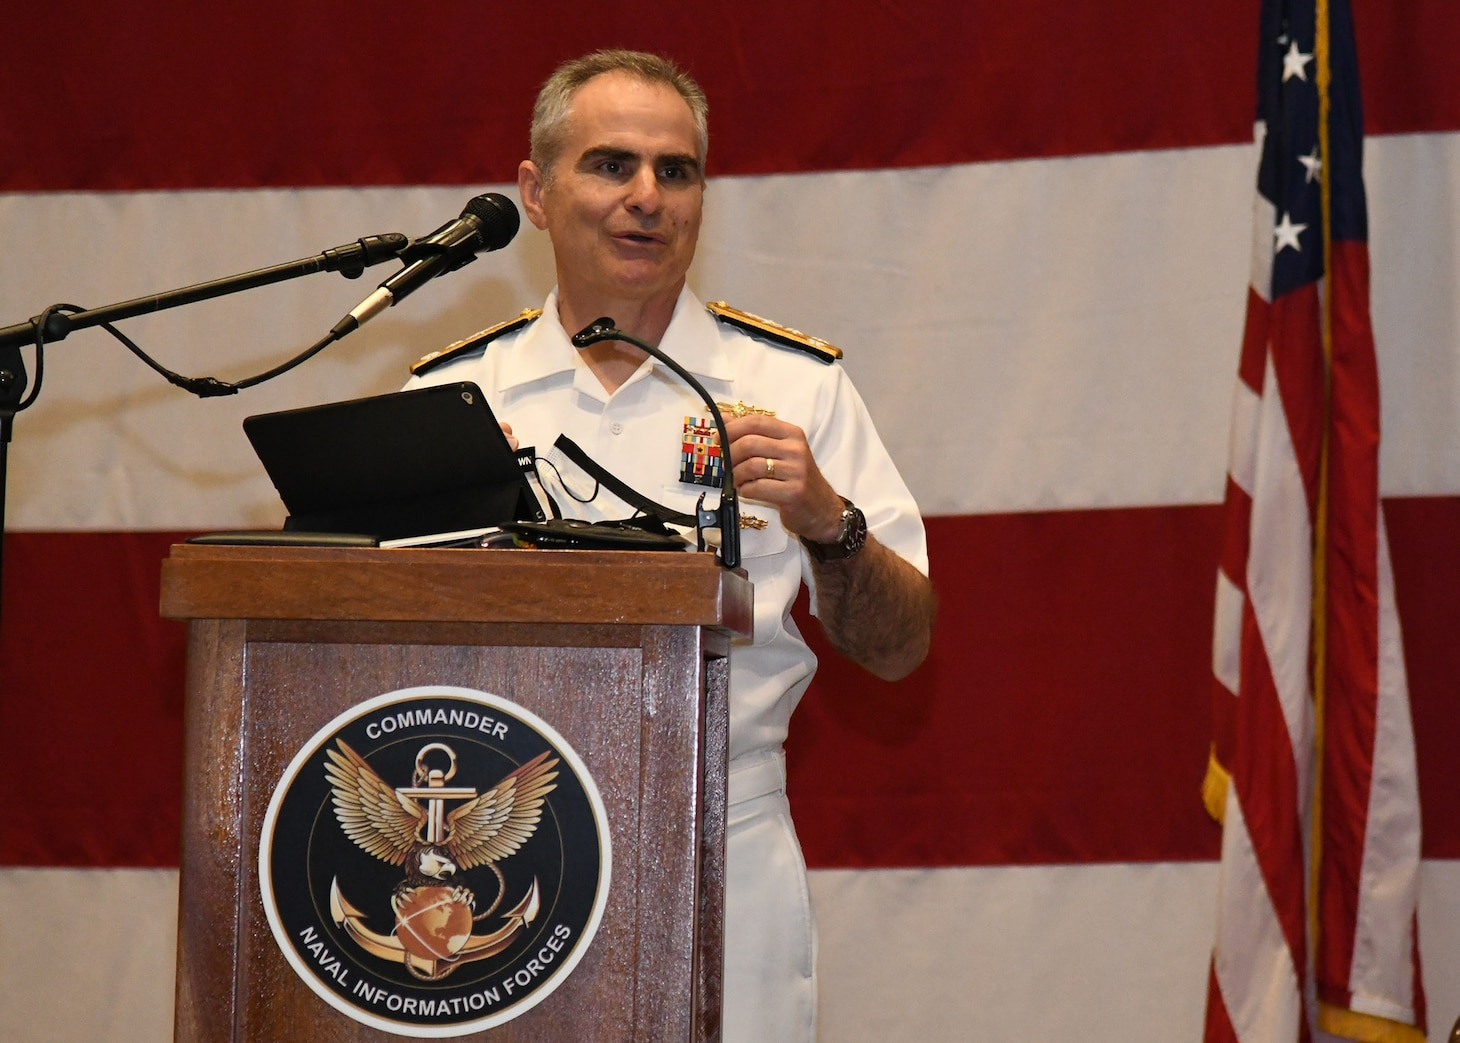 Vice Adm. Brian Brown gives his farewell speech during a change of command ceremony on May 7. (U.S. Navy photo by Robert Fluegel/RELEASED)